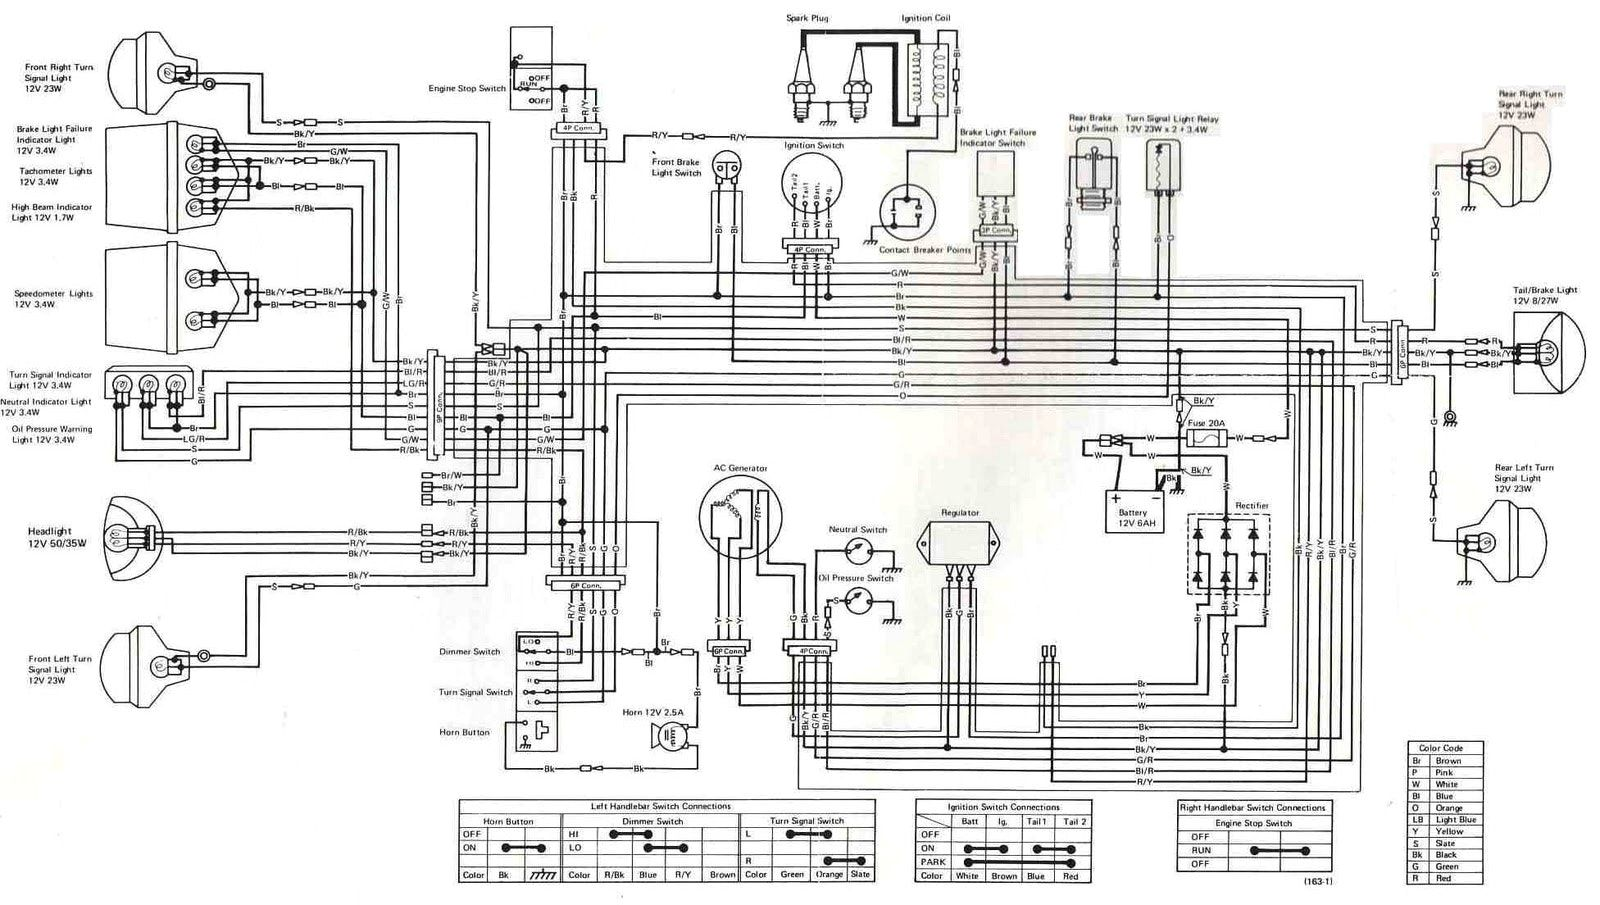 Kawasaki Mule 610 Wiring Diagram Kz400 1975 Electrical Excellent In